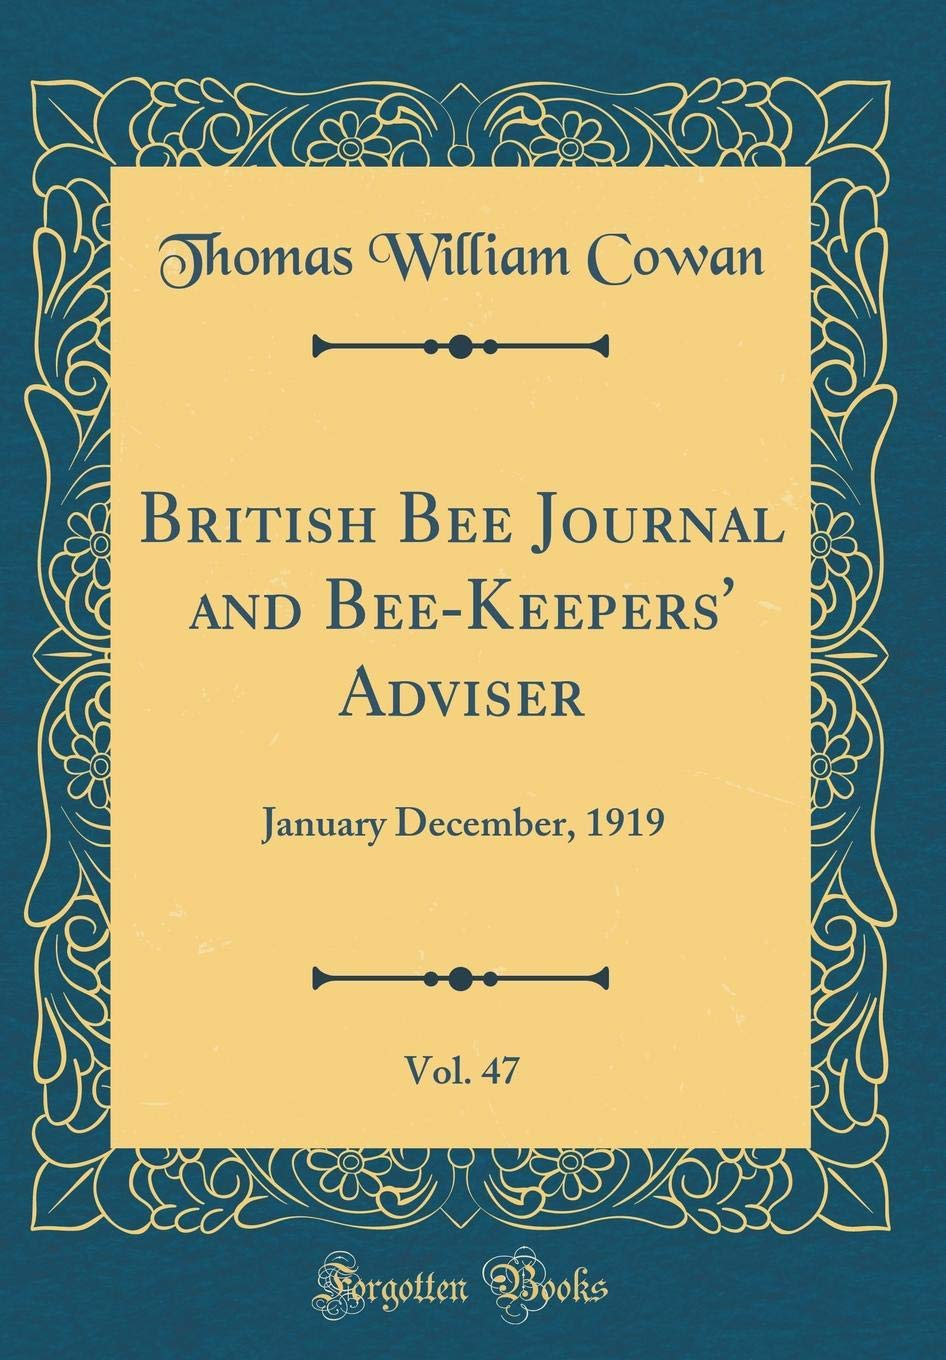 Download British Bee Journal and Bee-Keepers' Adviser, Vol. 47: January December, 1919 (Classic Reprint) ebook